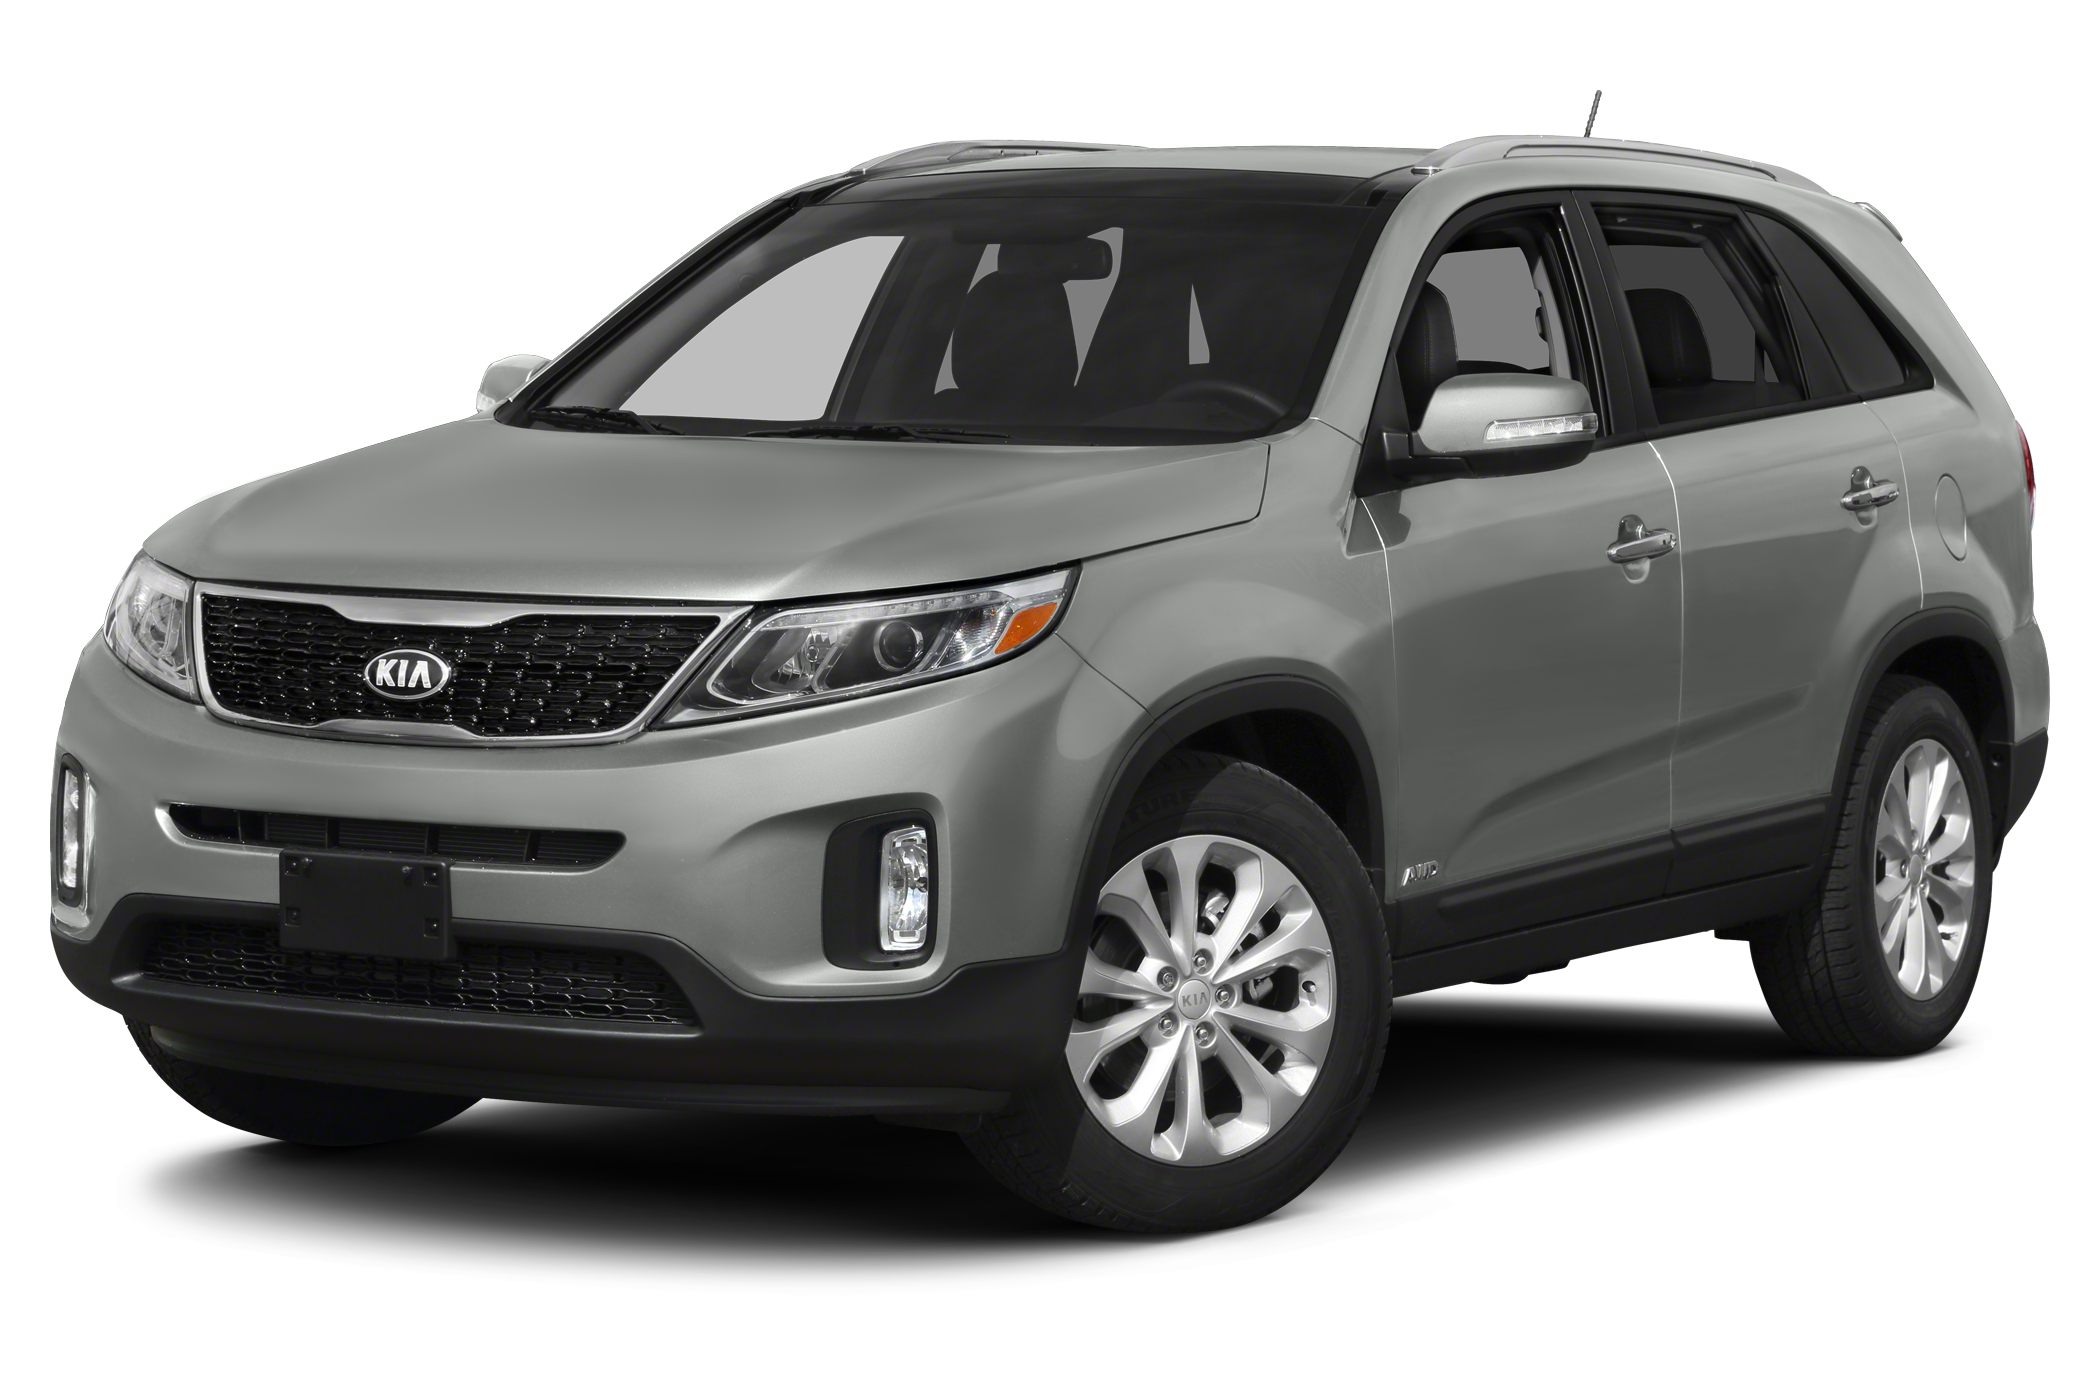 2014 Kia Sorento LX SUV for sale in Pendleton for $23,900 with 235 miles